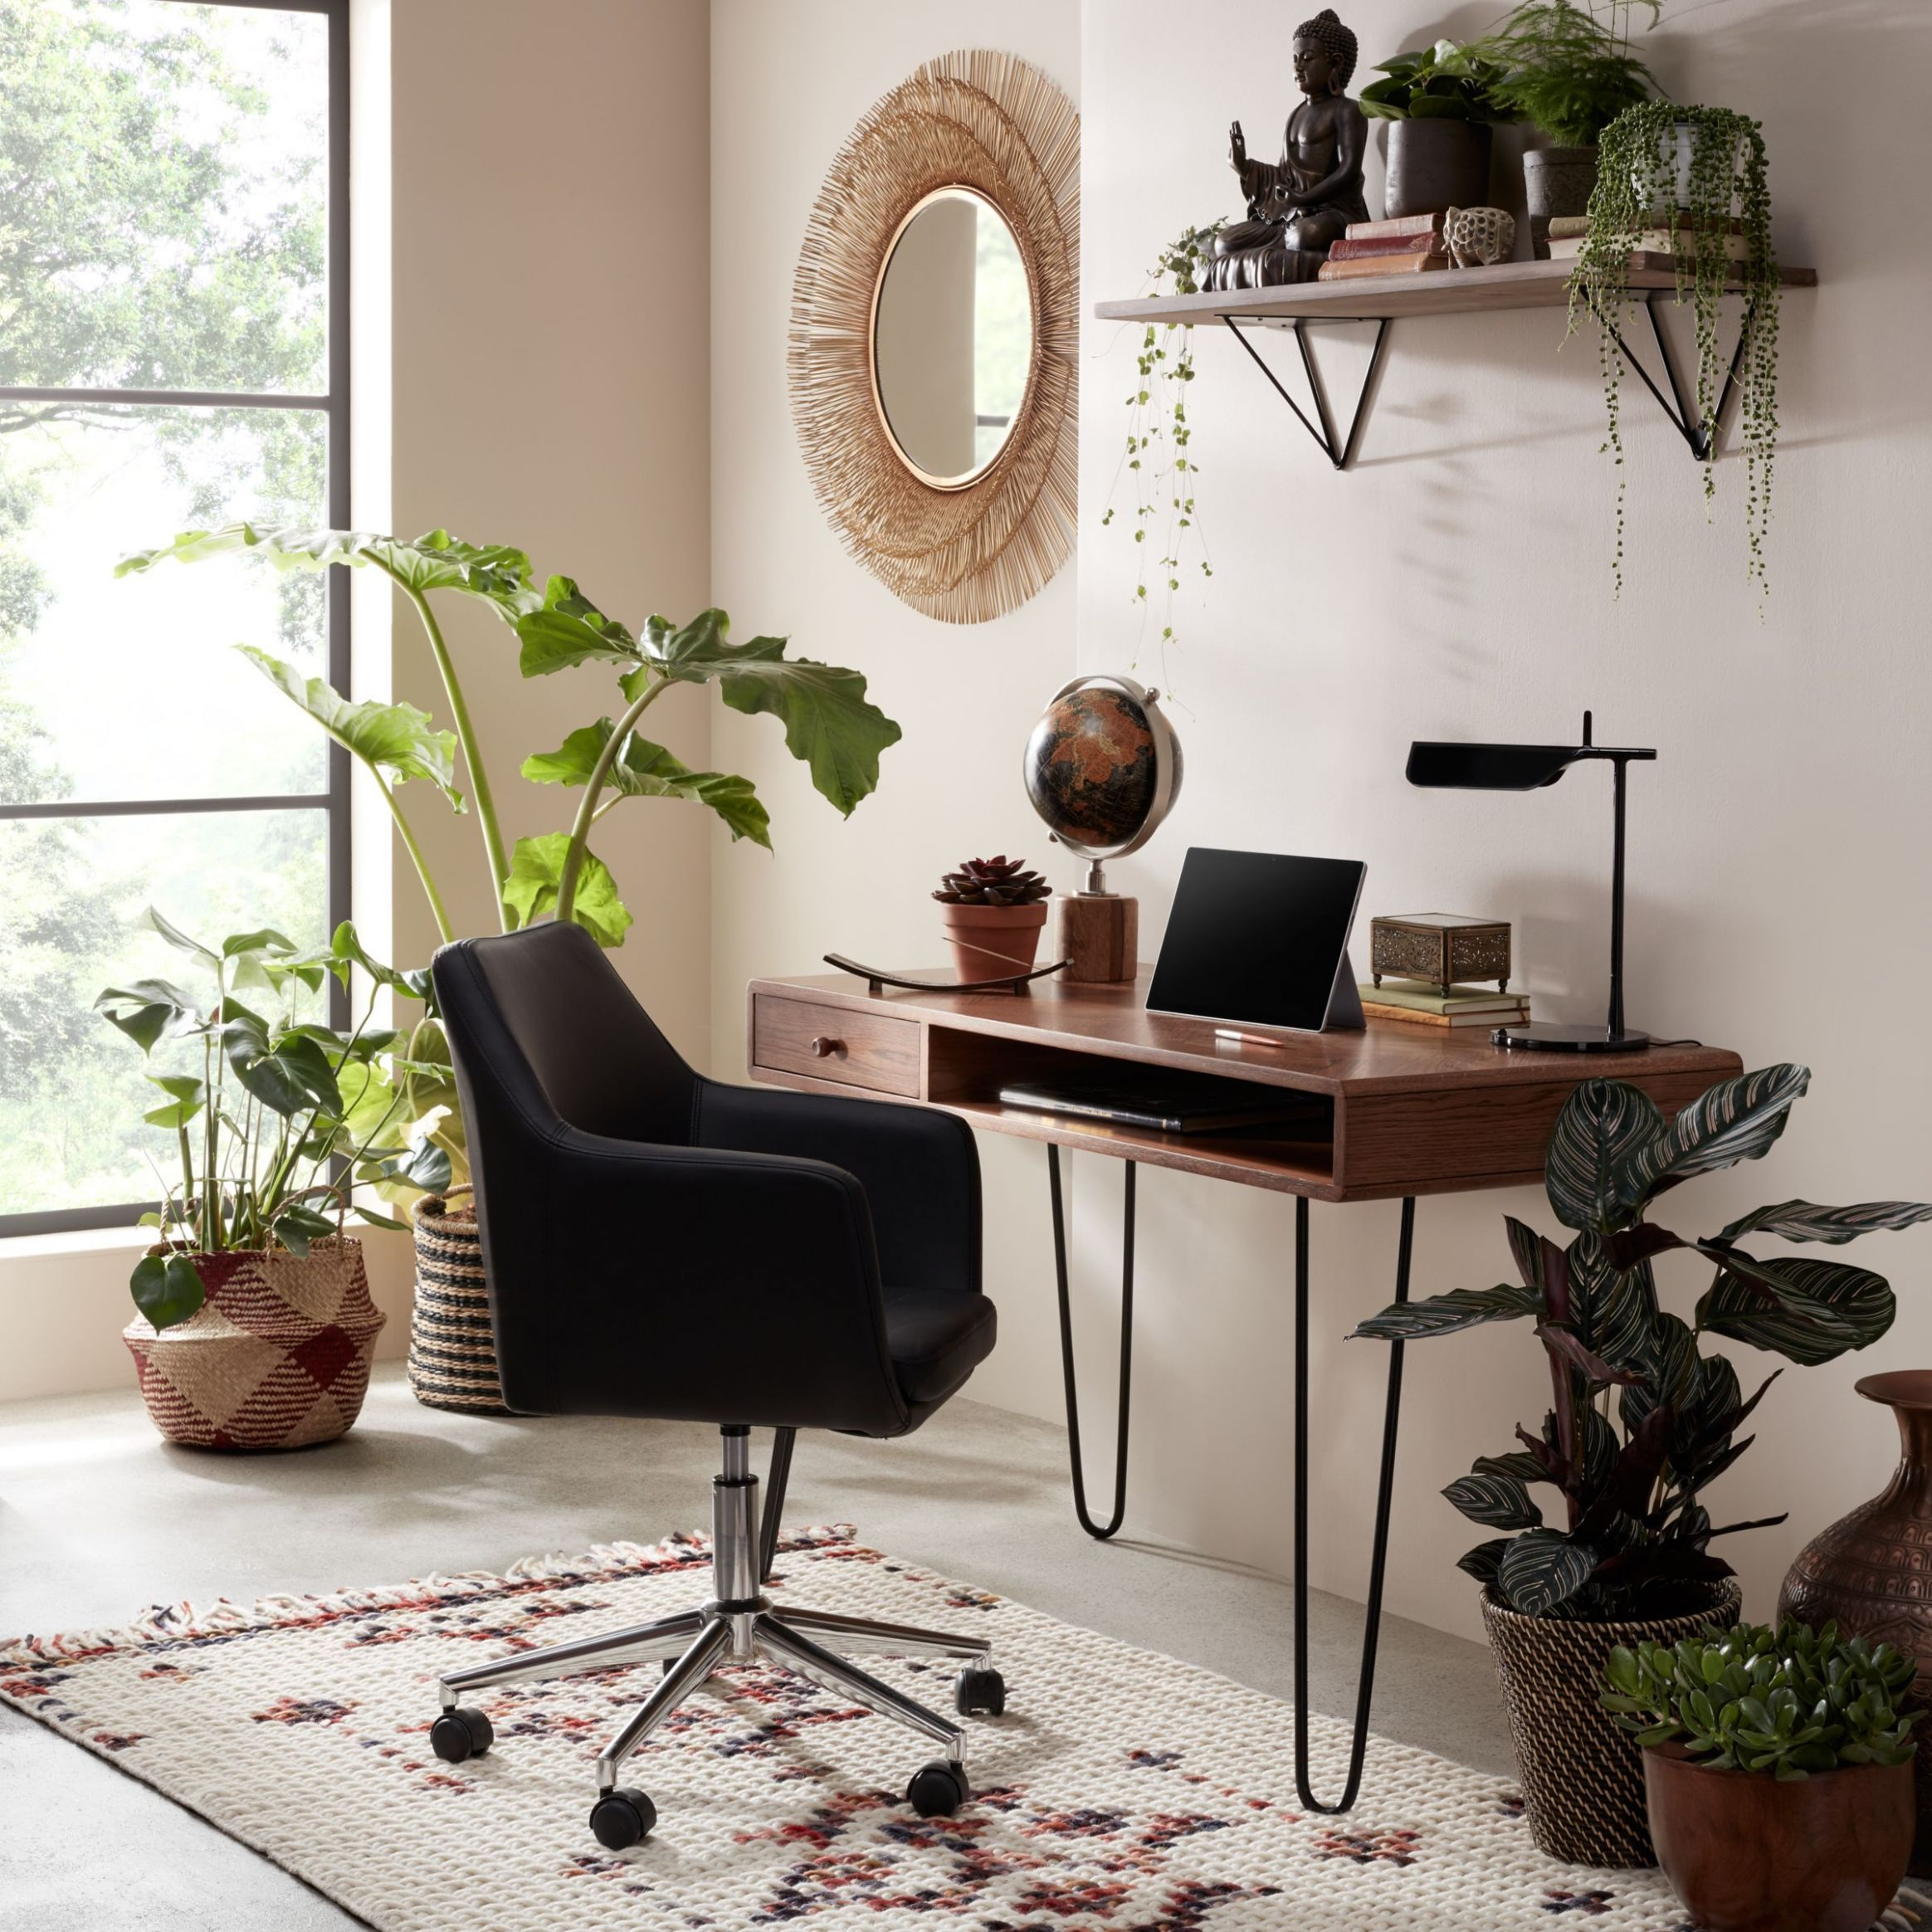 John Lewis & Partners Hairpin Desk | Home office chairs, Home ..